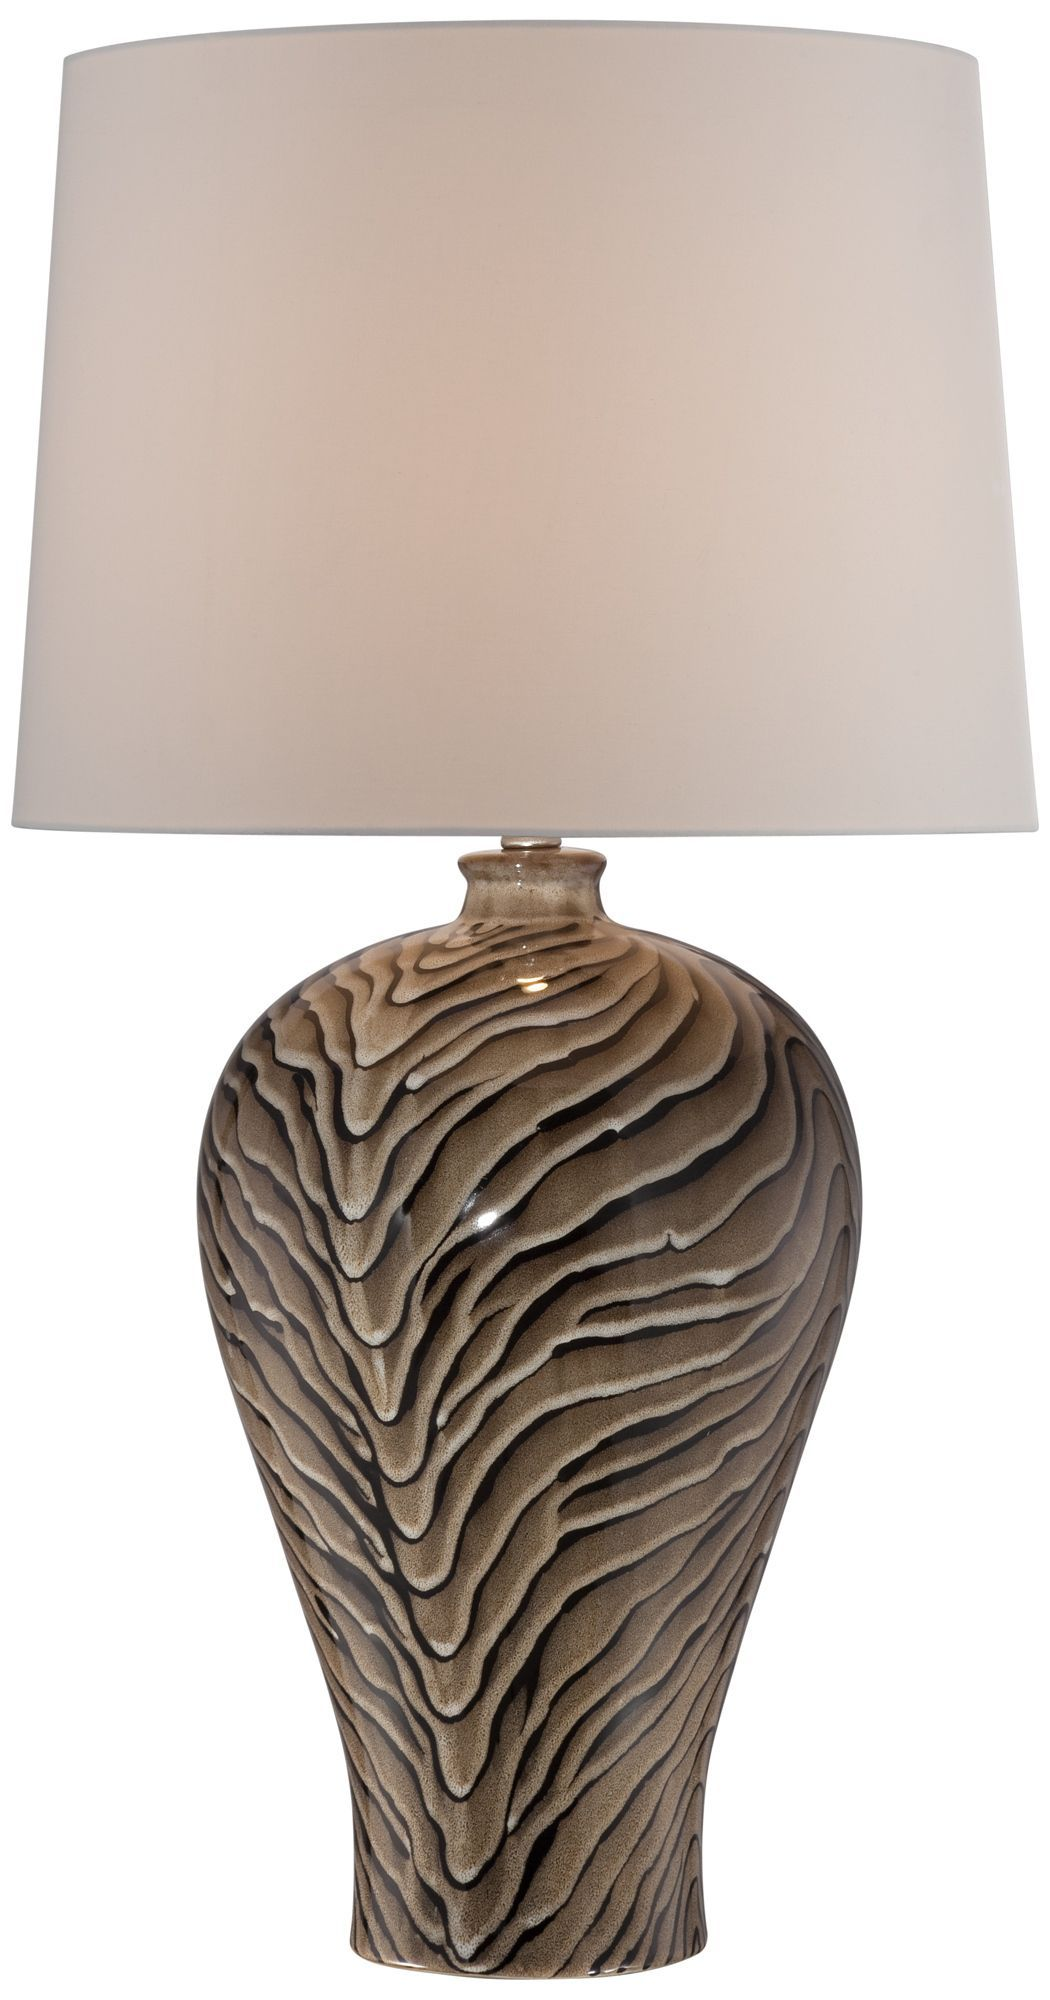 Animal print ceramic 34 inch h urn table lamp eurostylelighting animal print ceramic 34 inch h urn table lamp eurostylelighting geotapseo Gallery